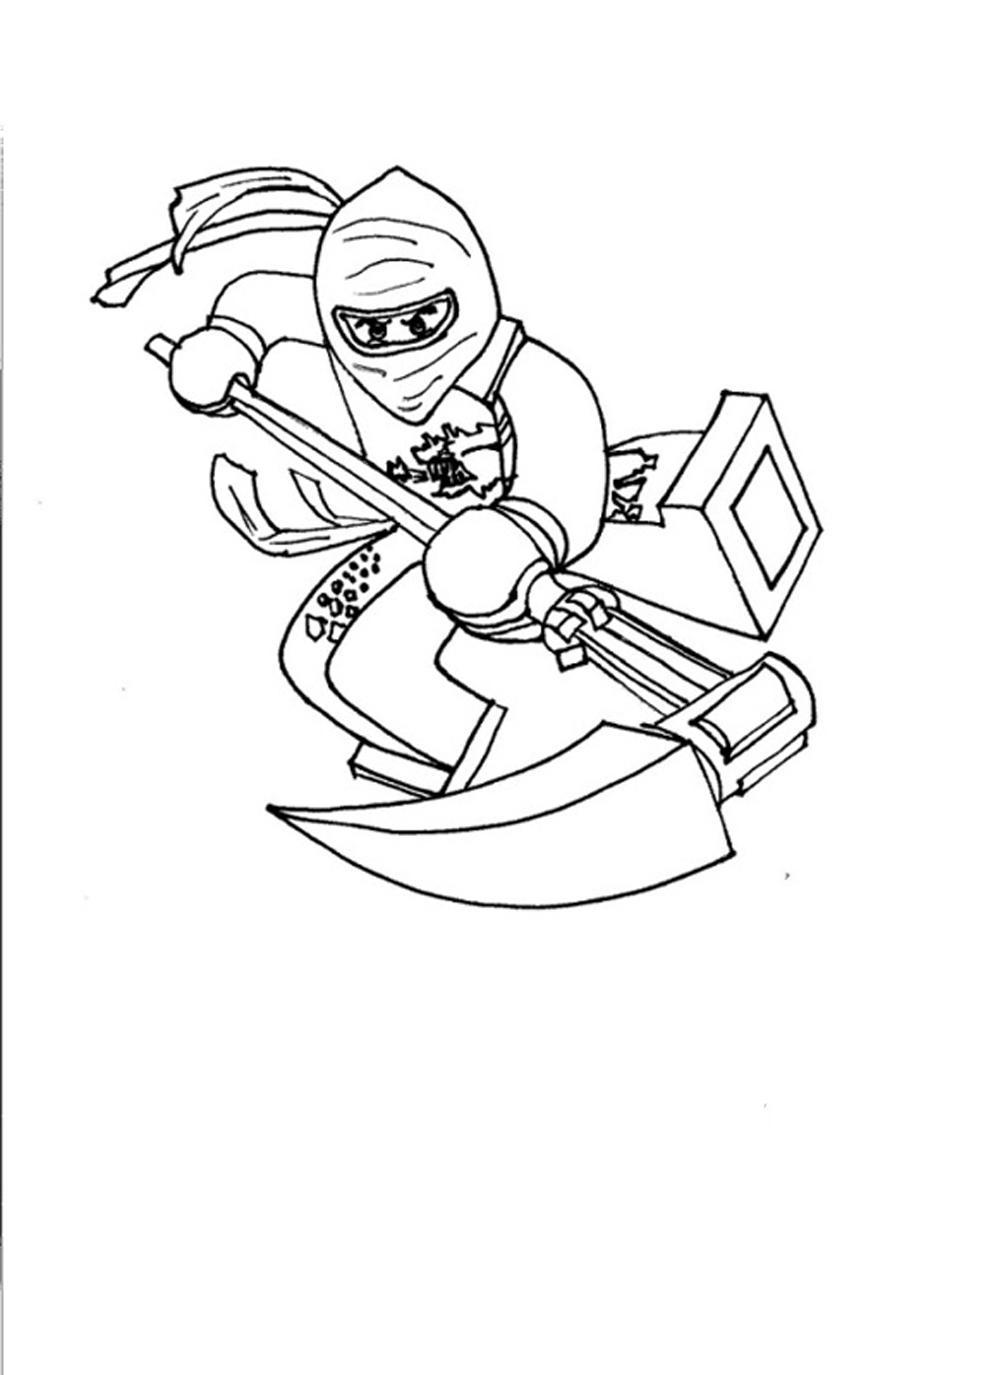 lego-ninjago-colouring-in-pages | | BestAppsForKids.com